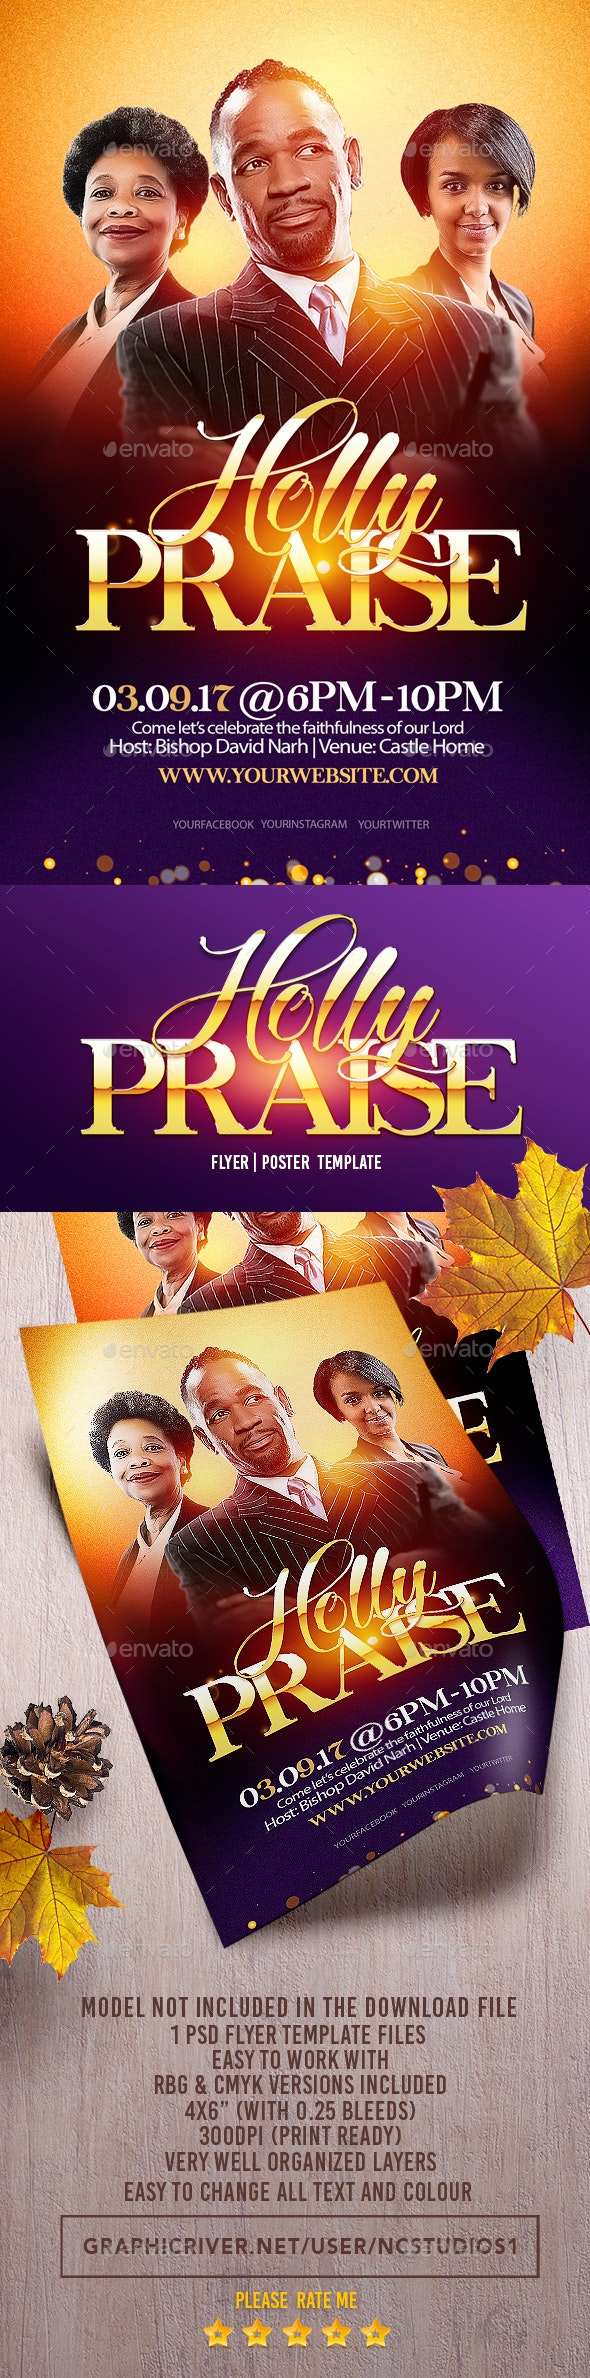 Holly Praise Flyer Template - Flyers Print Templates